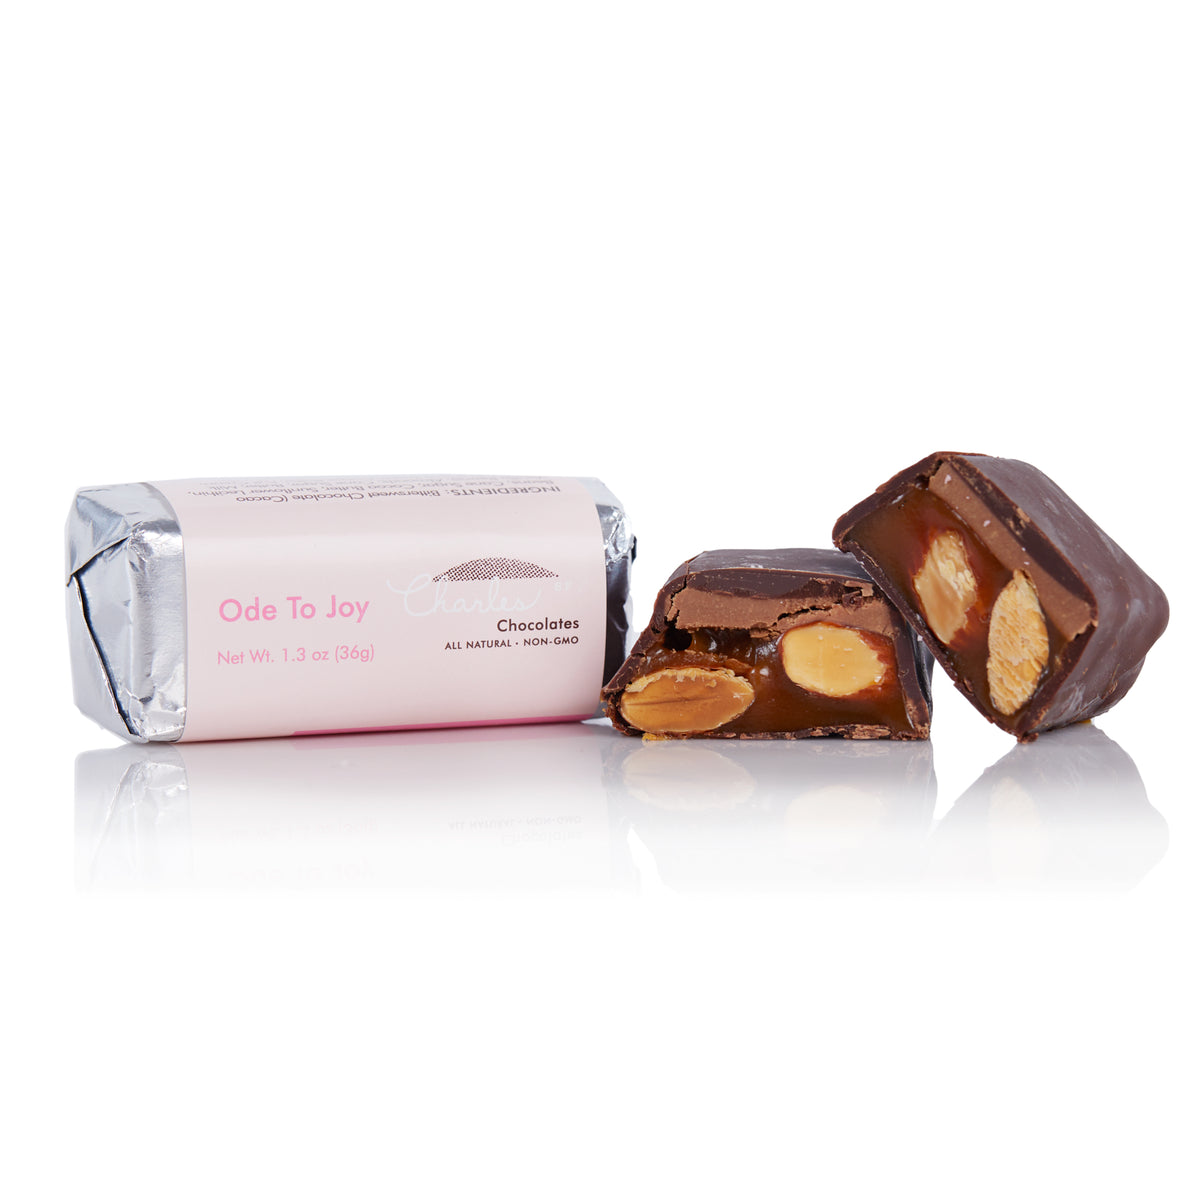 Charles Chocolates, Ode to Joy Mini Bar